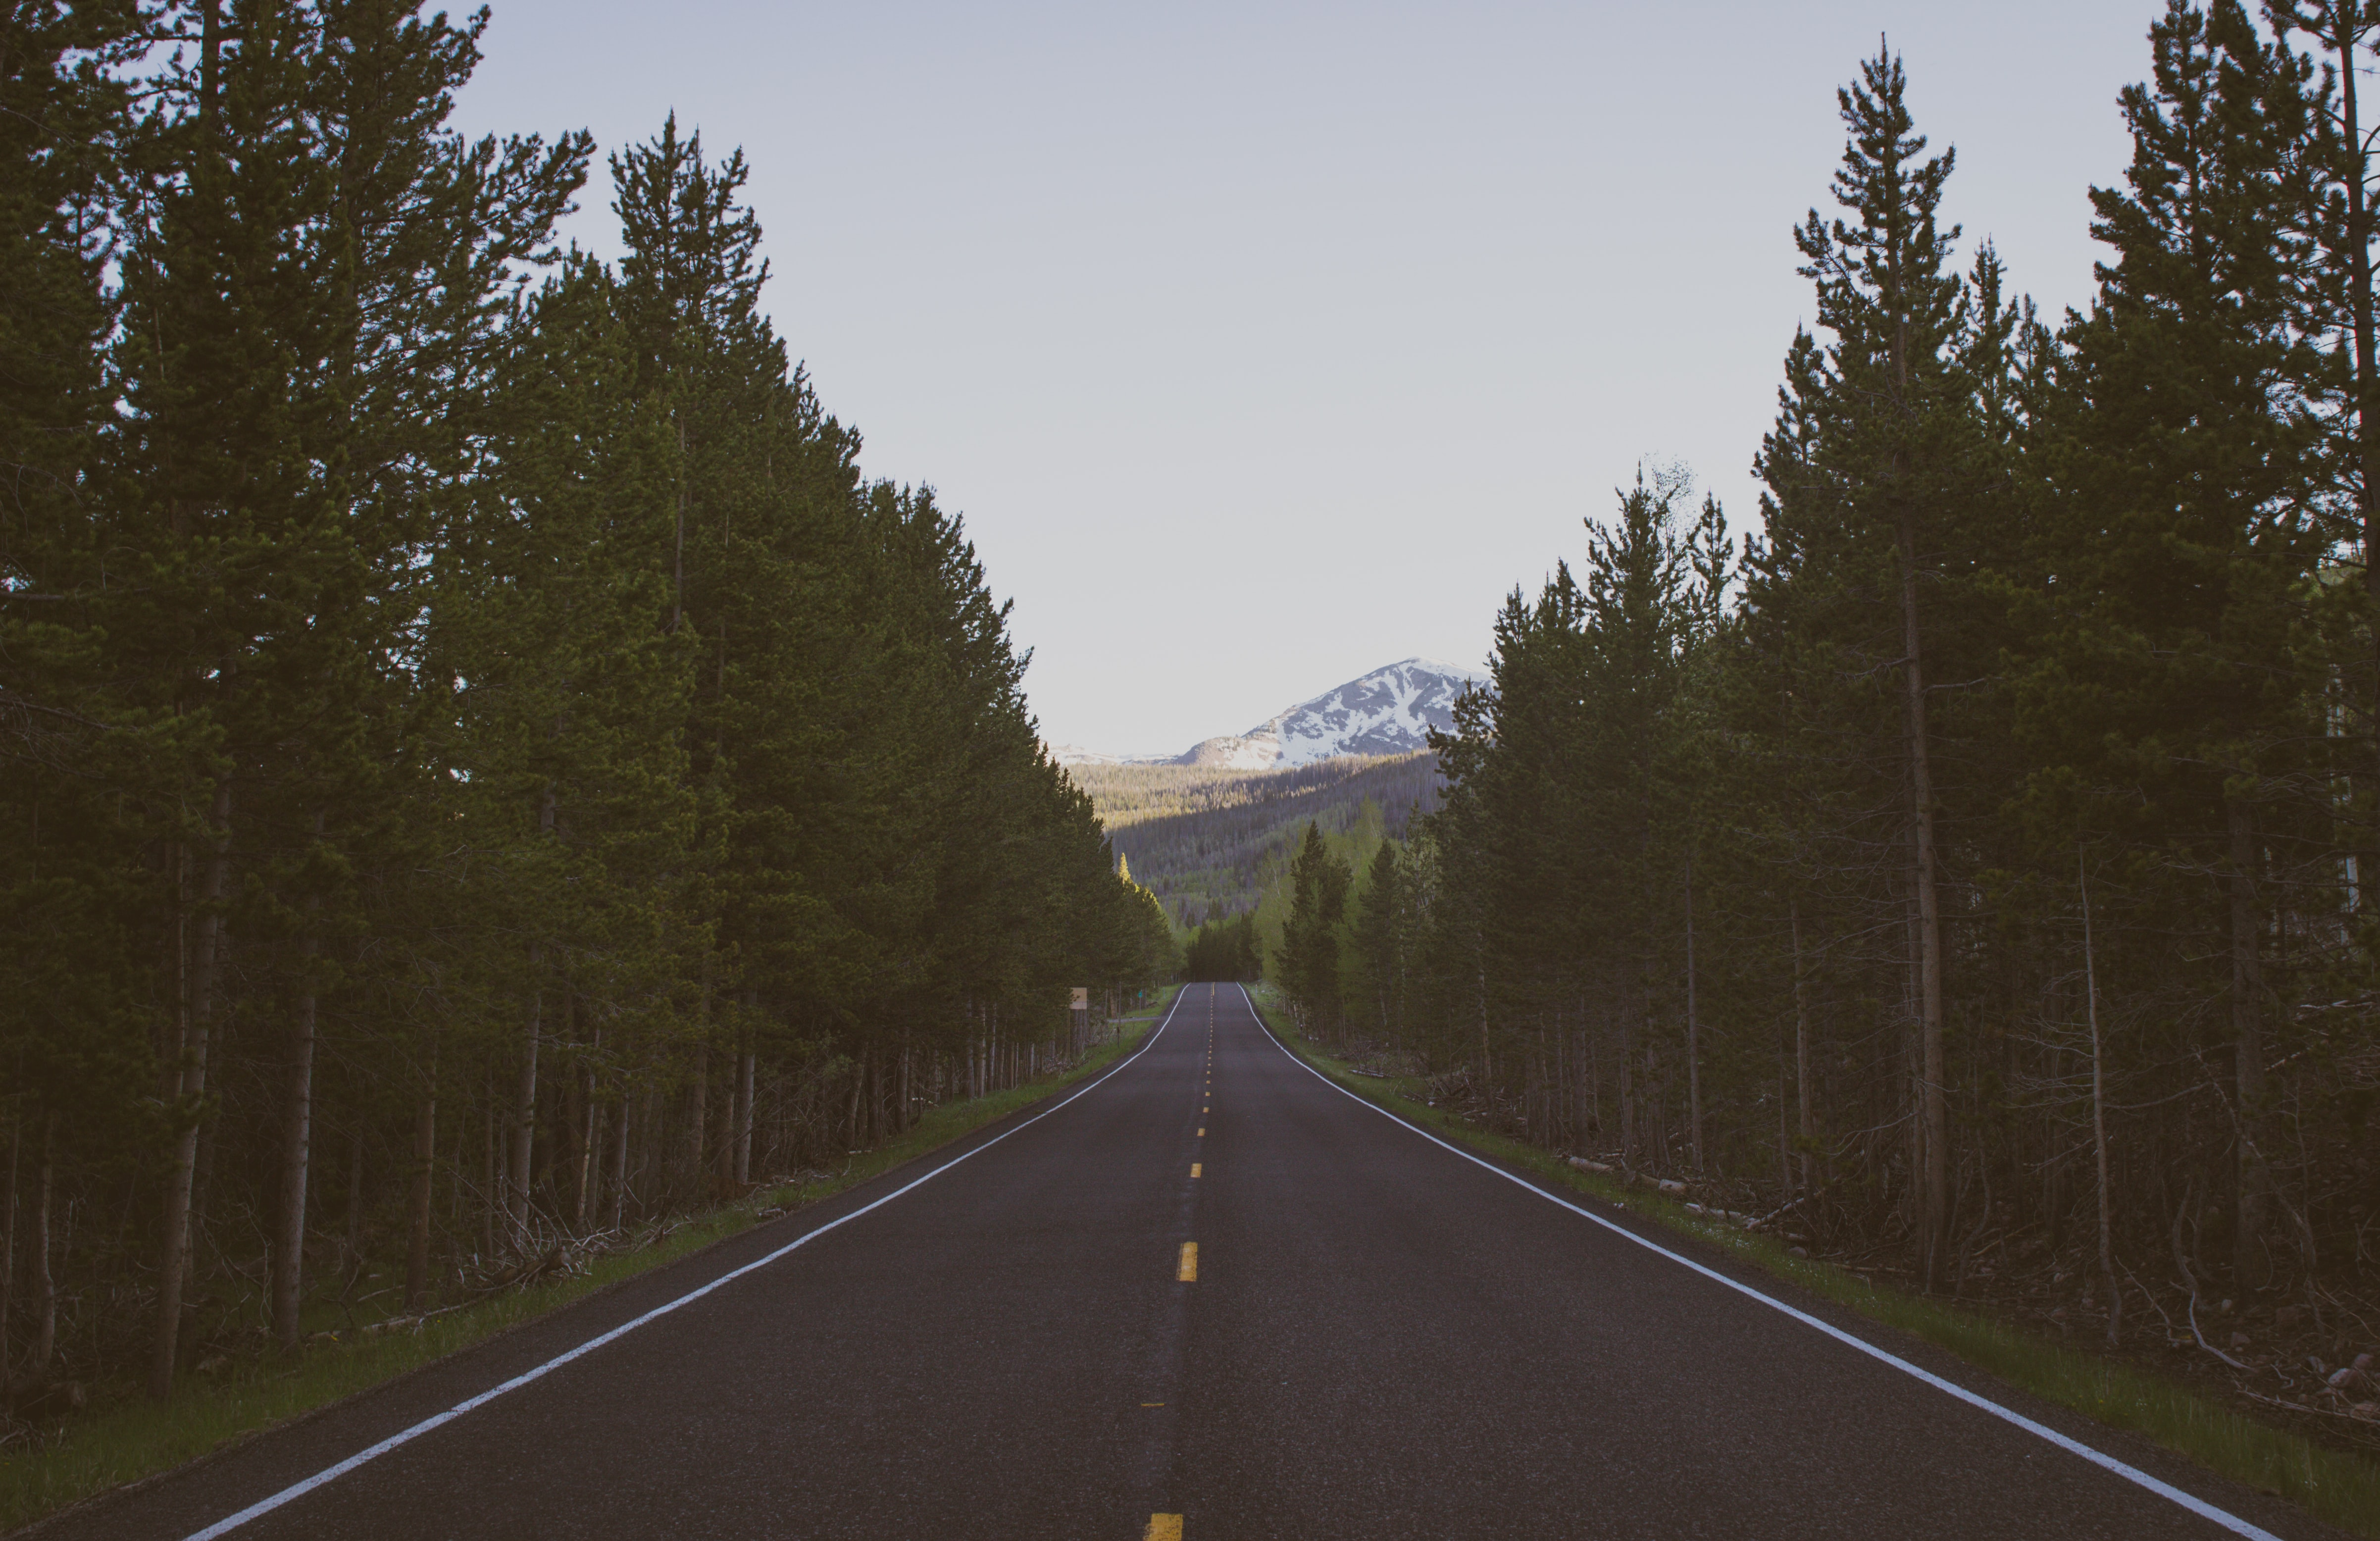 A straight asphalt road leading into snowy mountains